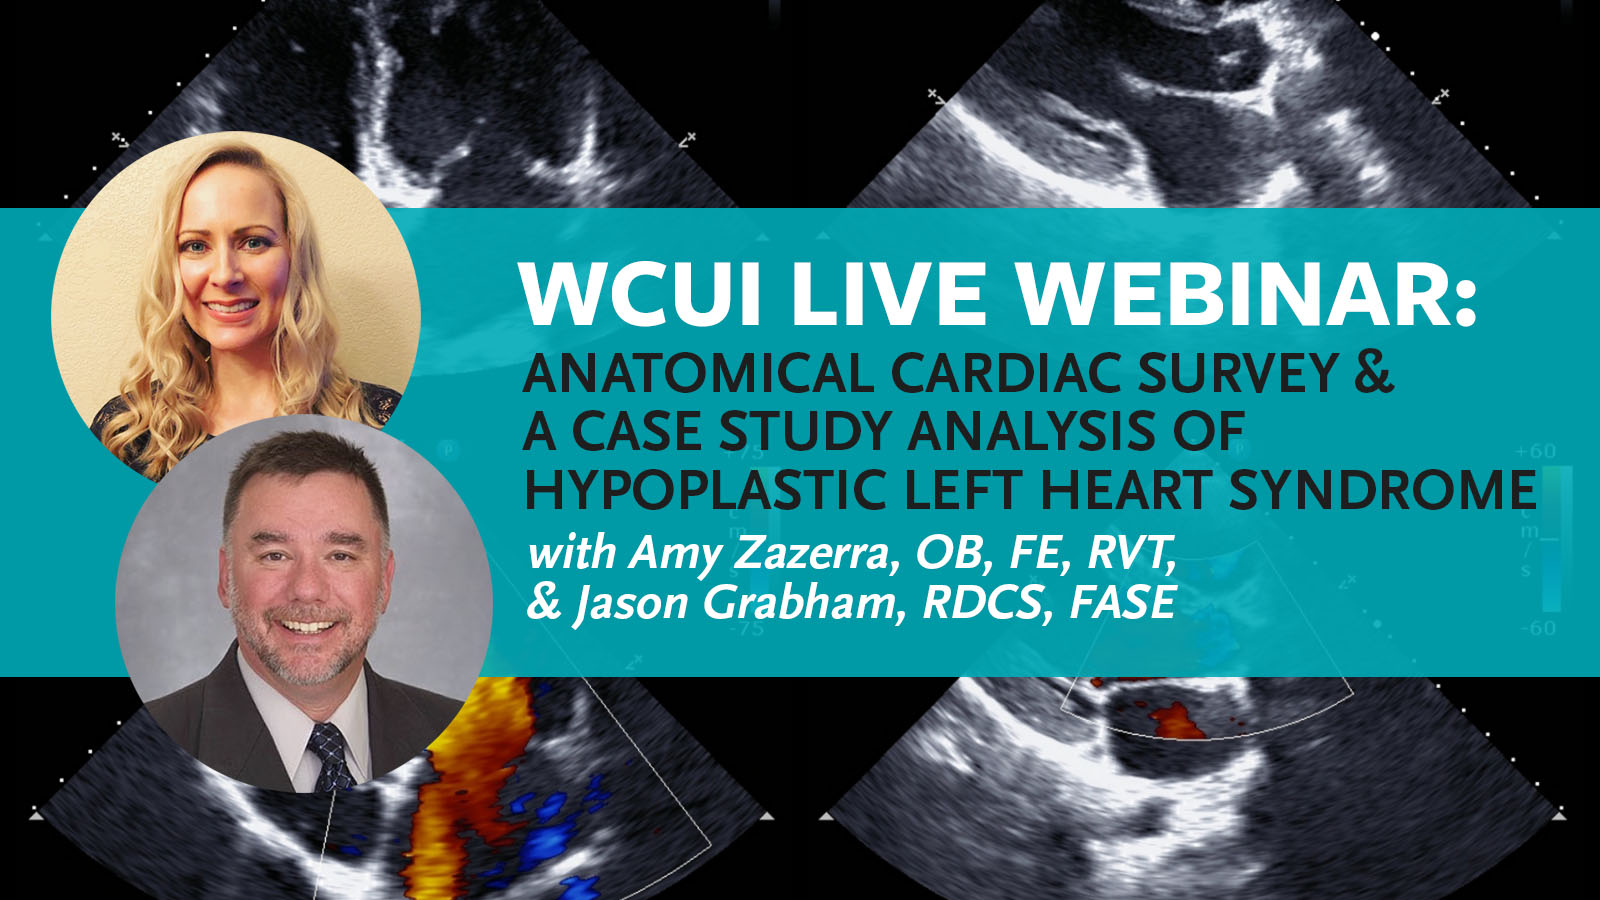 Blog Post cover shows a headshot of the Guest Speakers of the next CME webinar with Amy Zazerra and Jason Grabham